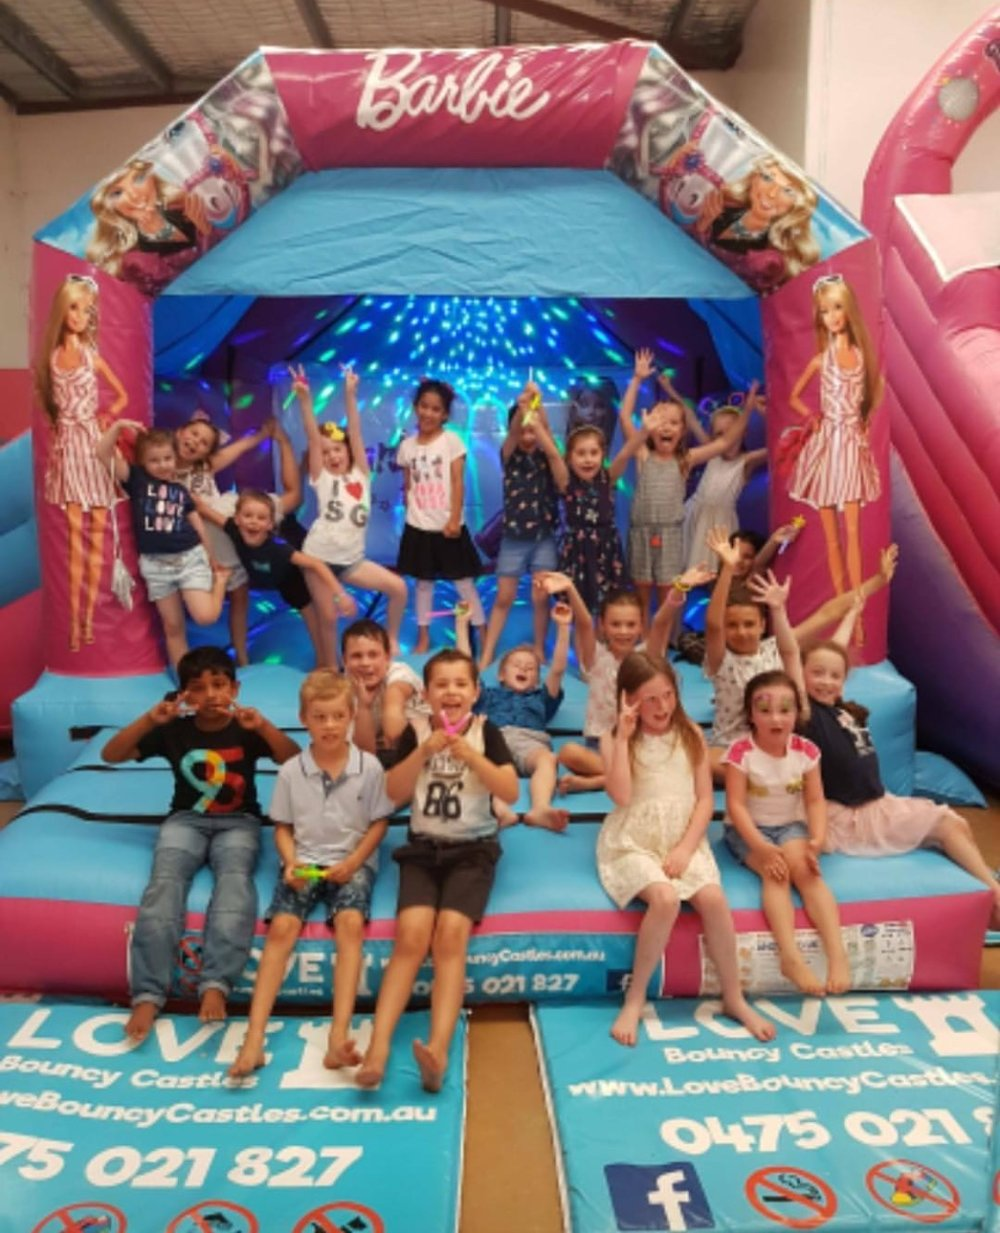 Bouncy Castle Hire In Rockingham